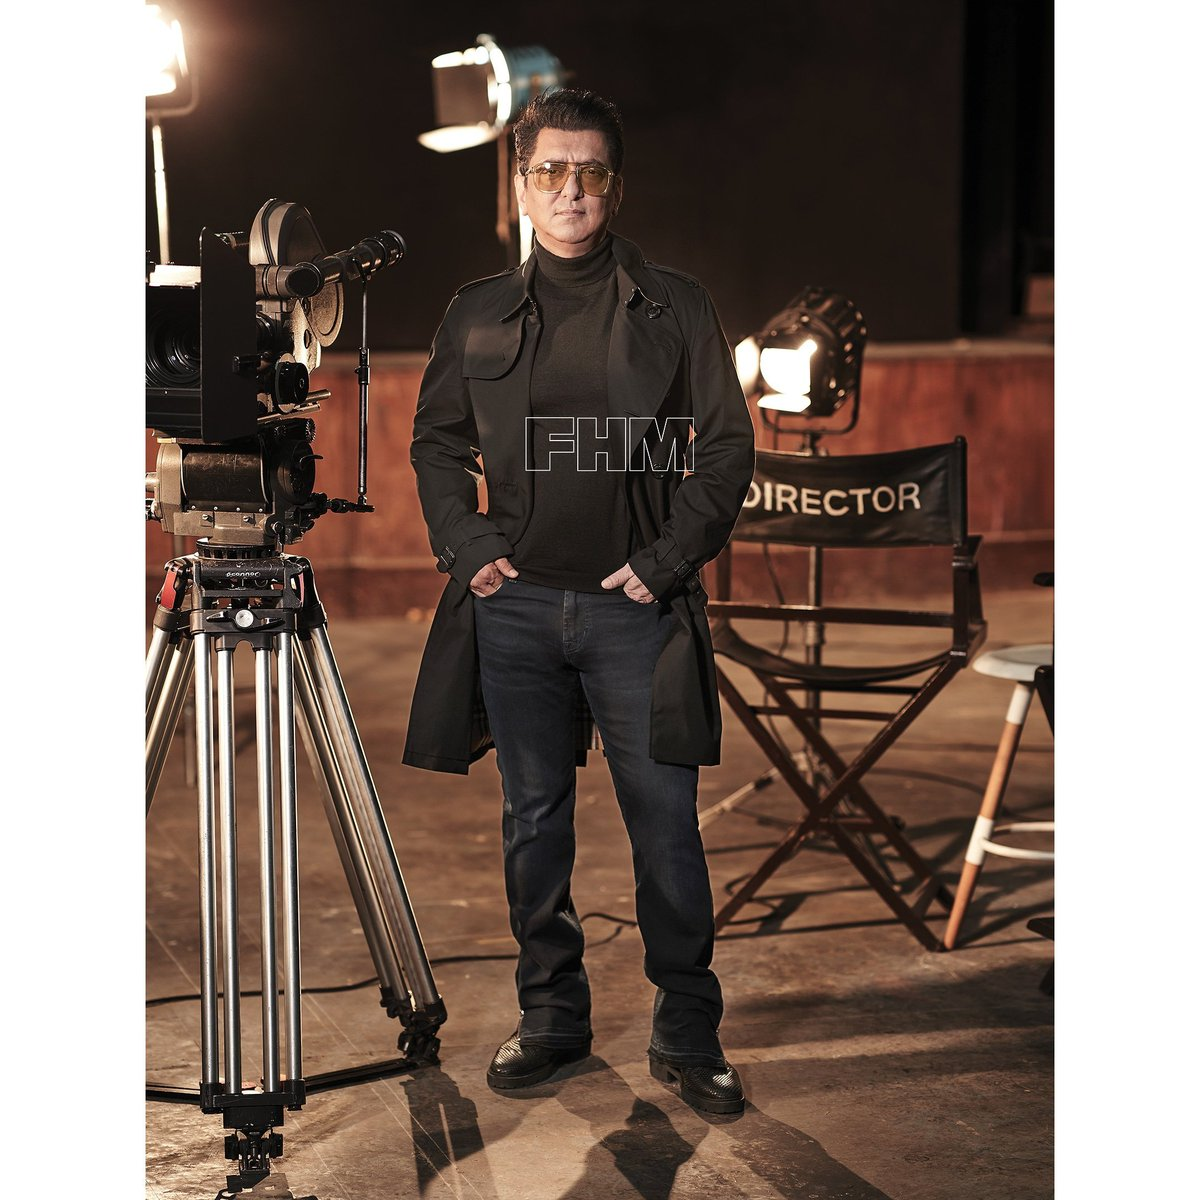 The man who took action in Bollywood to another level, Sajid Nadiadwala!  : @avigowariker   #march #march2020 #marchissue #marchcoverstars #TigerShroff #SajidNadiadwala #Baaghi3 #actionstar  #magazinephotoshoot #menslifestyle #mensmagazine #fhm #fhmmagazine #fhmcover #fhmindiapic.twitter.com/fW4z2LhWFQ